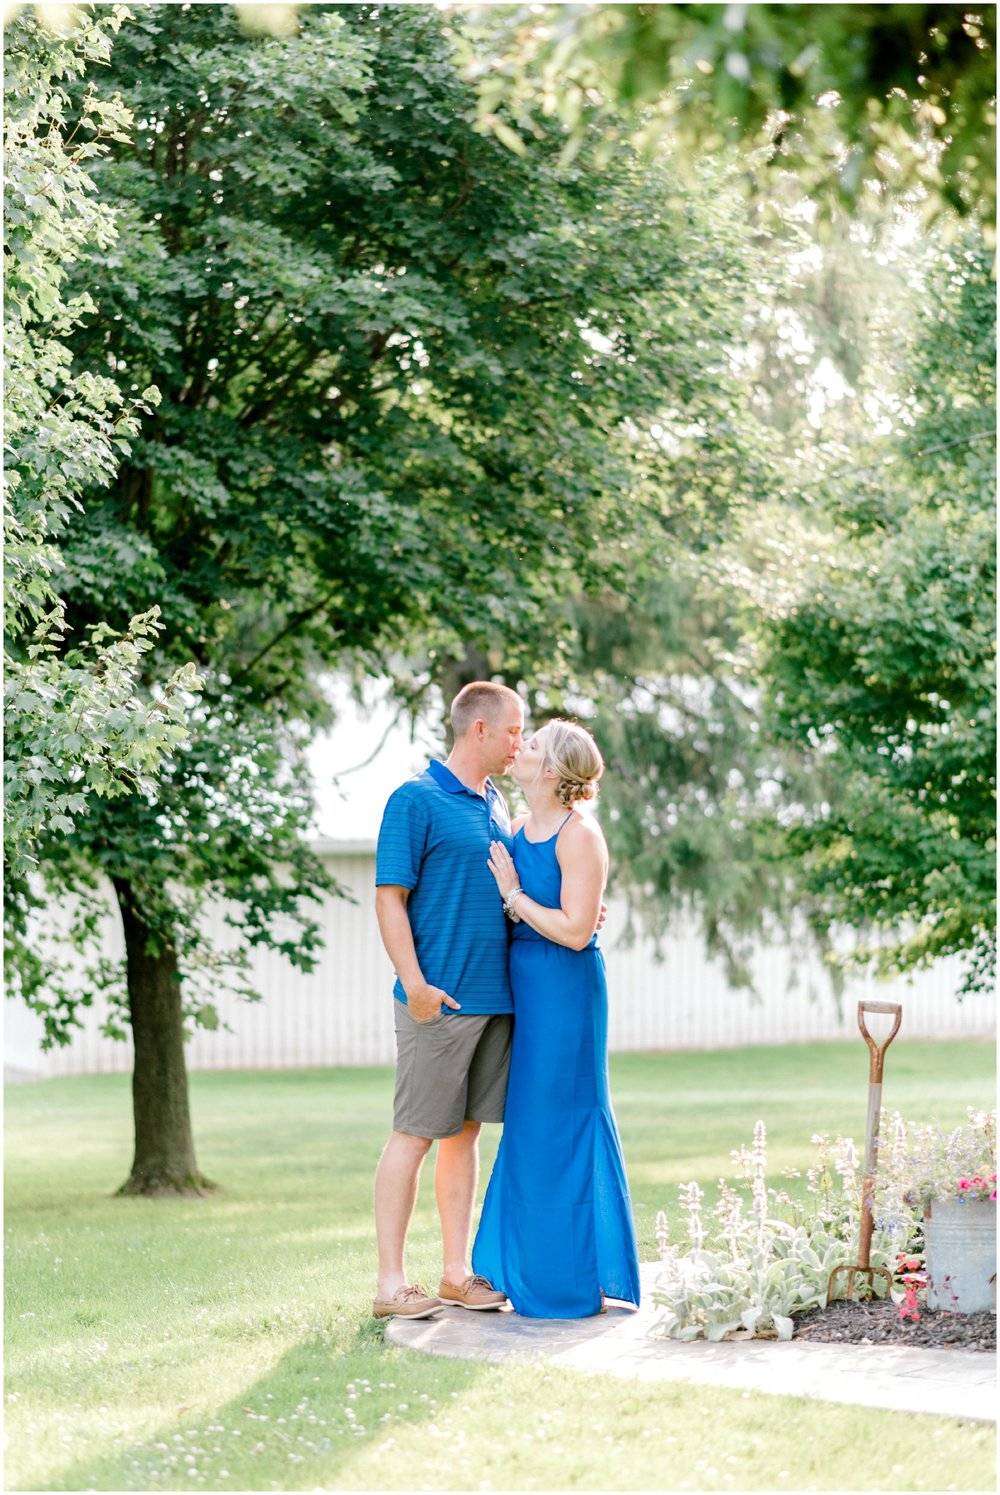 Summer Private Farm Engagement Session - Krista Brackin Photography_0006.jpg